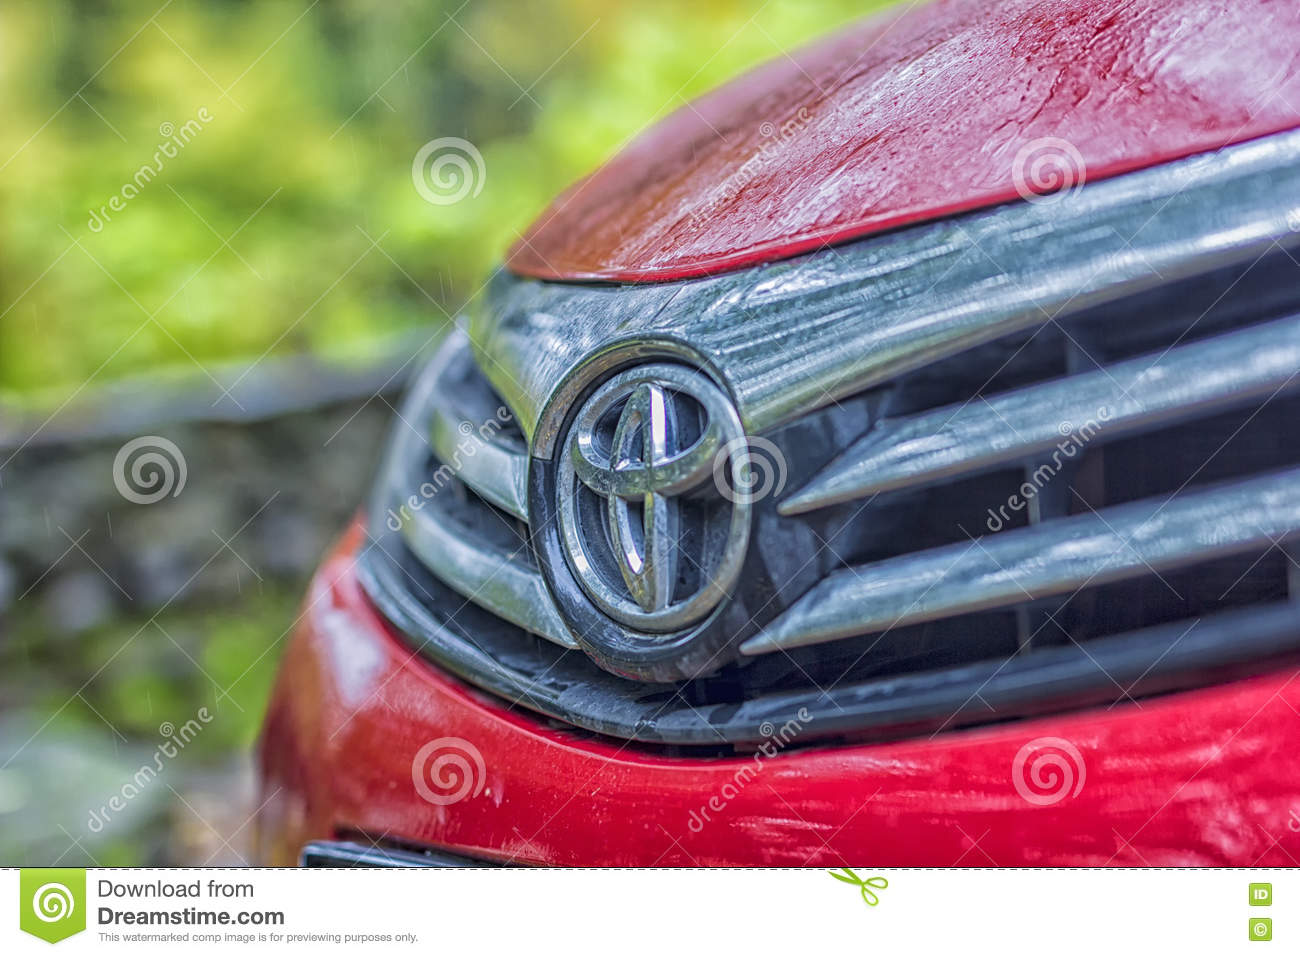 Red Toyota Corolla Motor Vehicle Editorial Photography Image Of